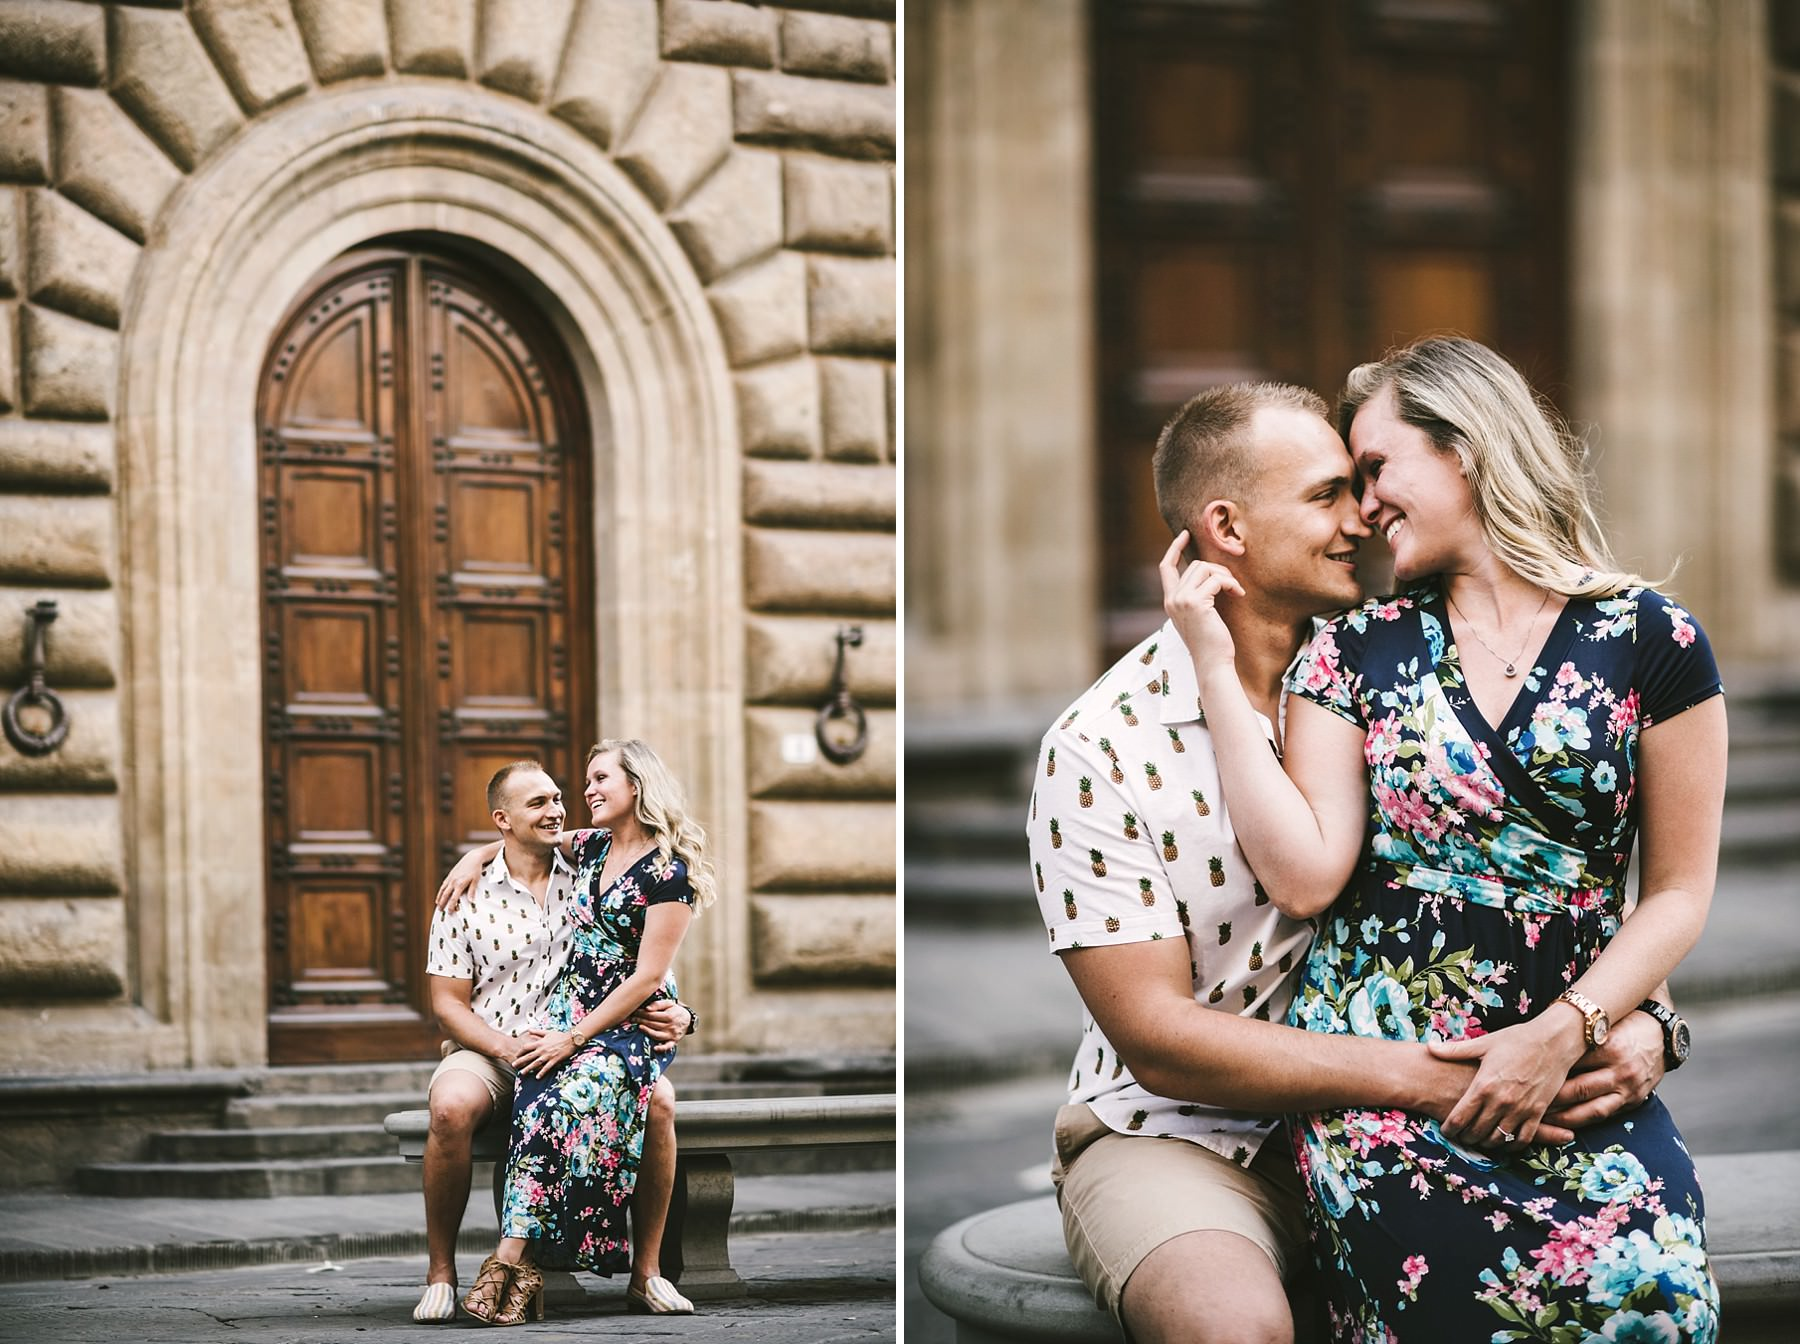 Lovely engagement photo session in the historic centre of Florence. Creative and modern portrait photography